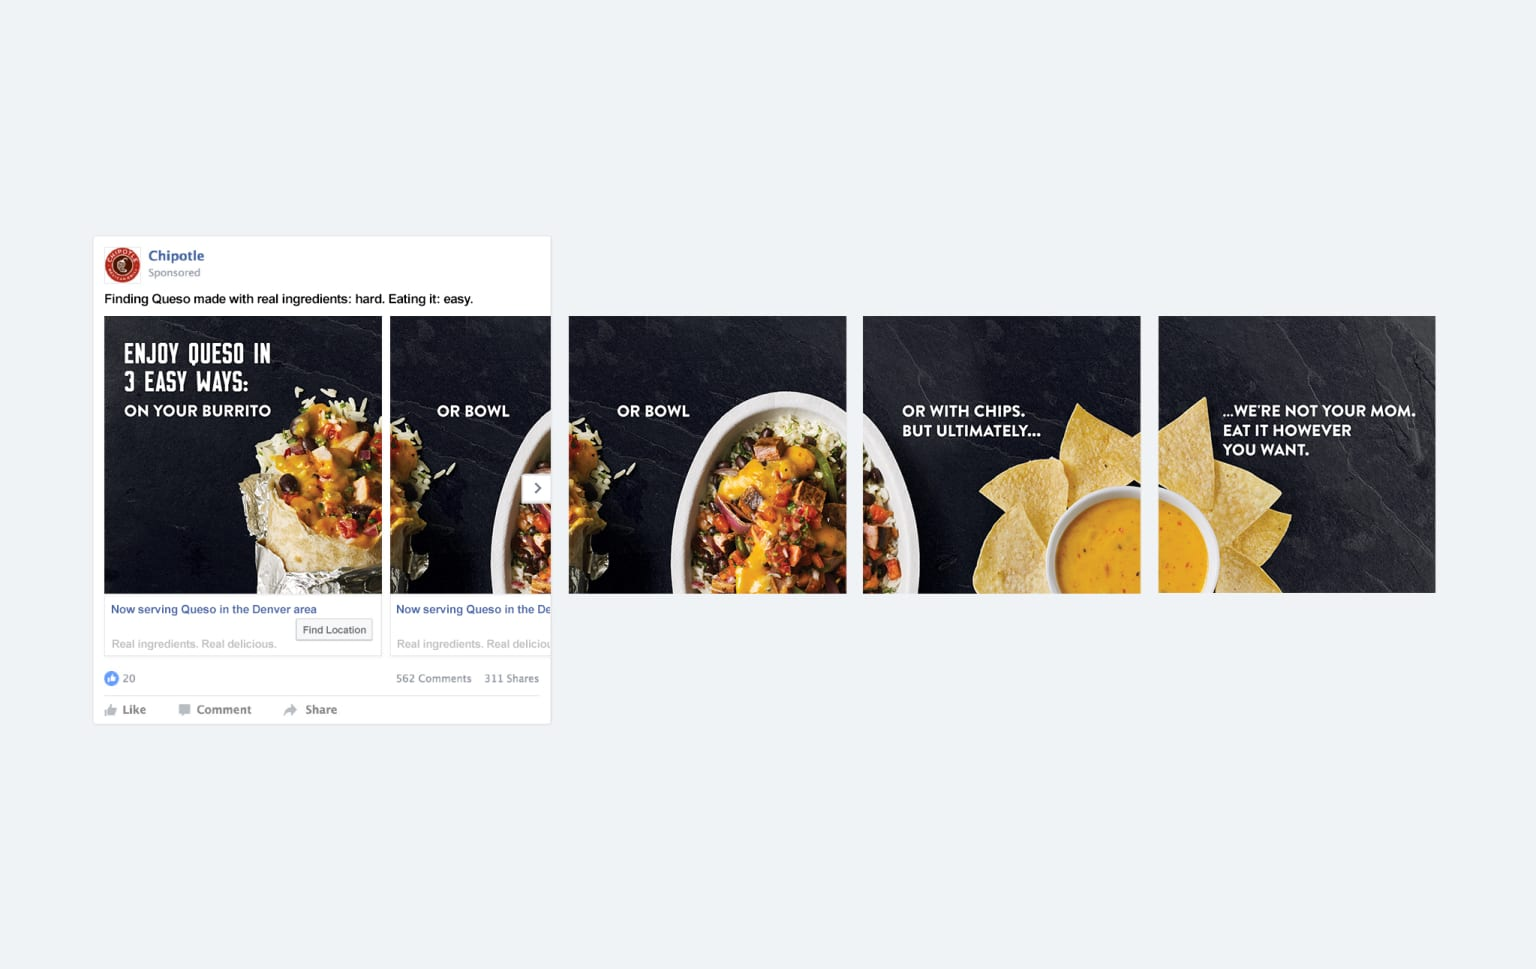 Chipotle's Quesocial Launch